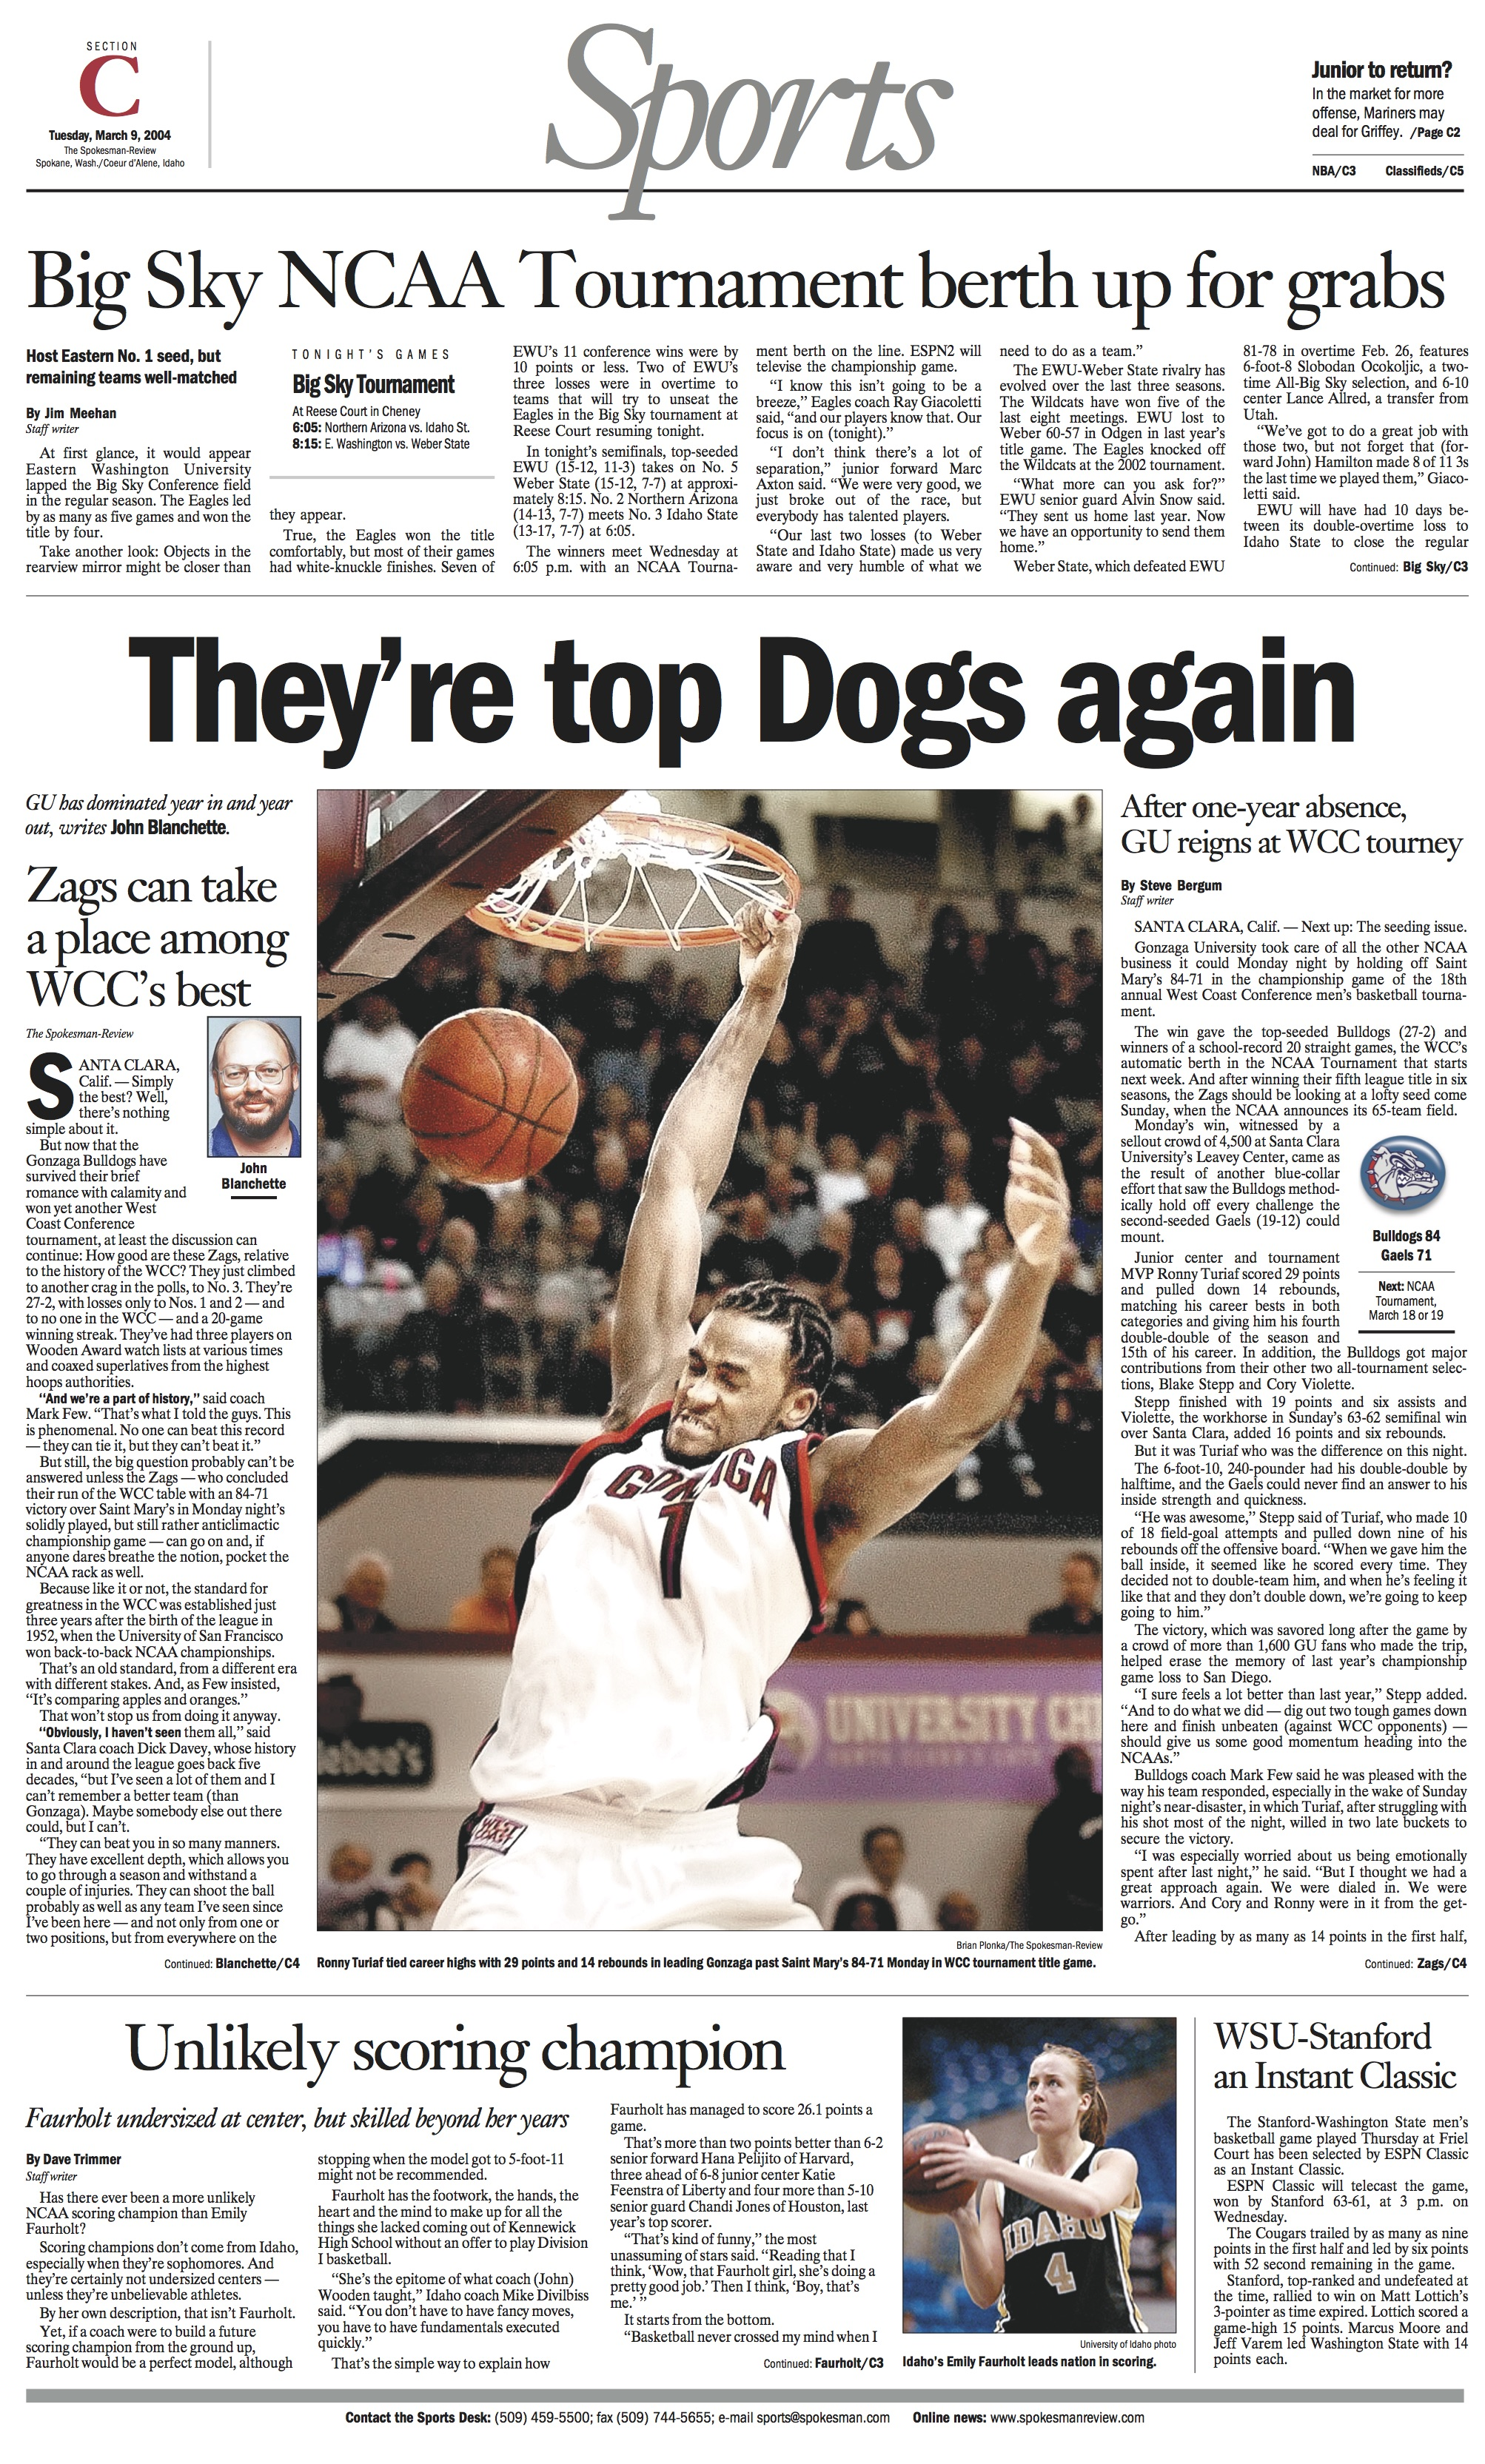 Historic page: Mar. 9, 2004